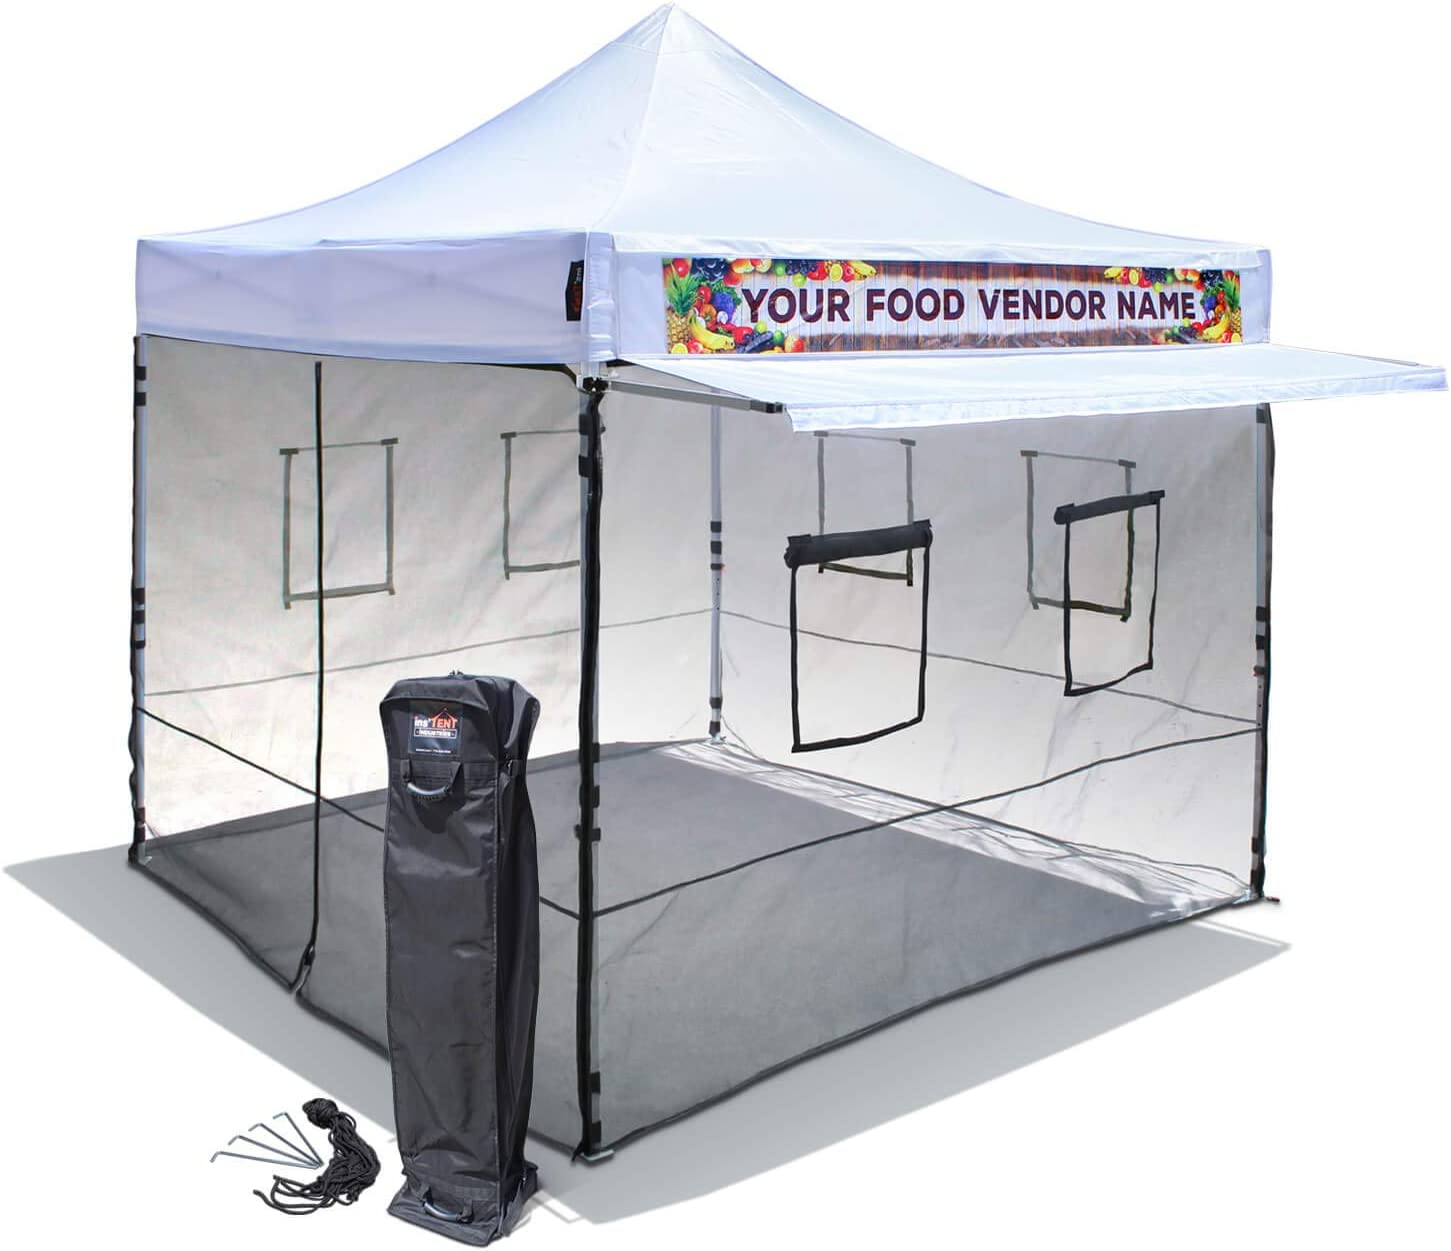 10'x10' Food Vendor Canopy Tent with Mesh Wall Set & Awning